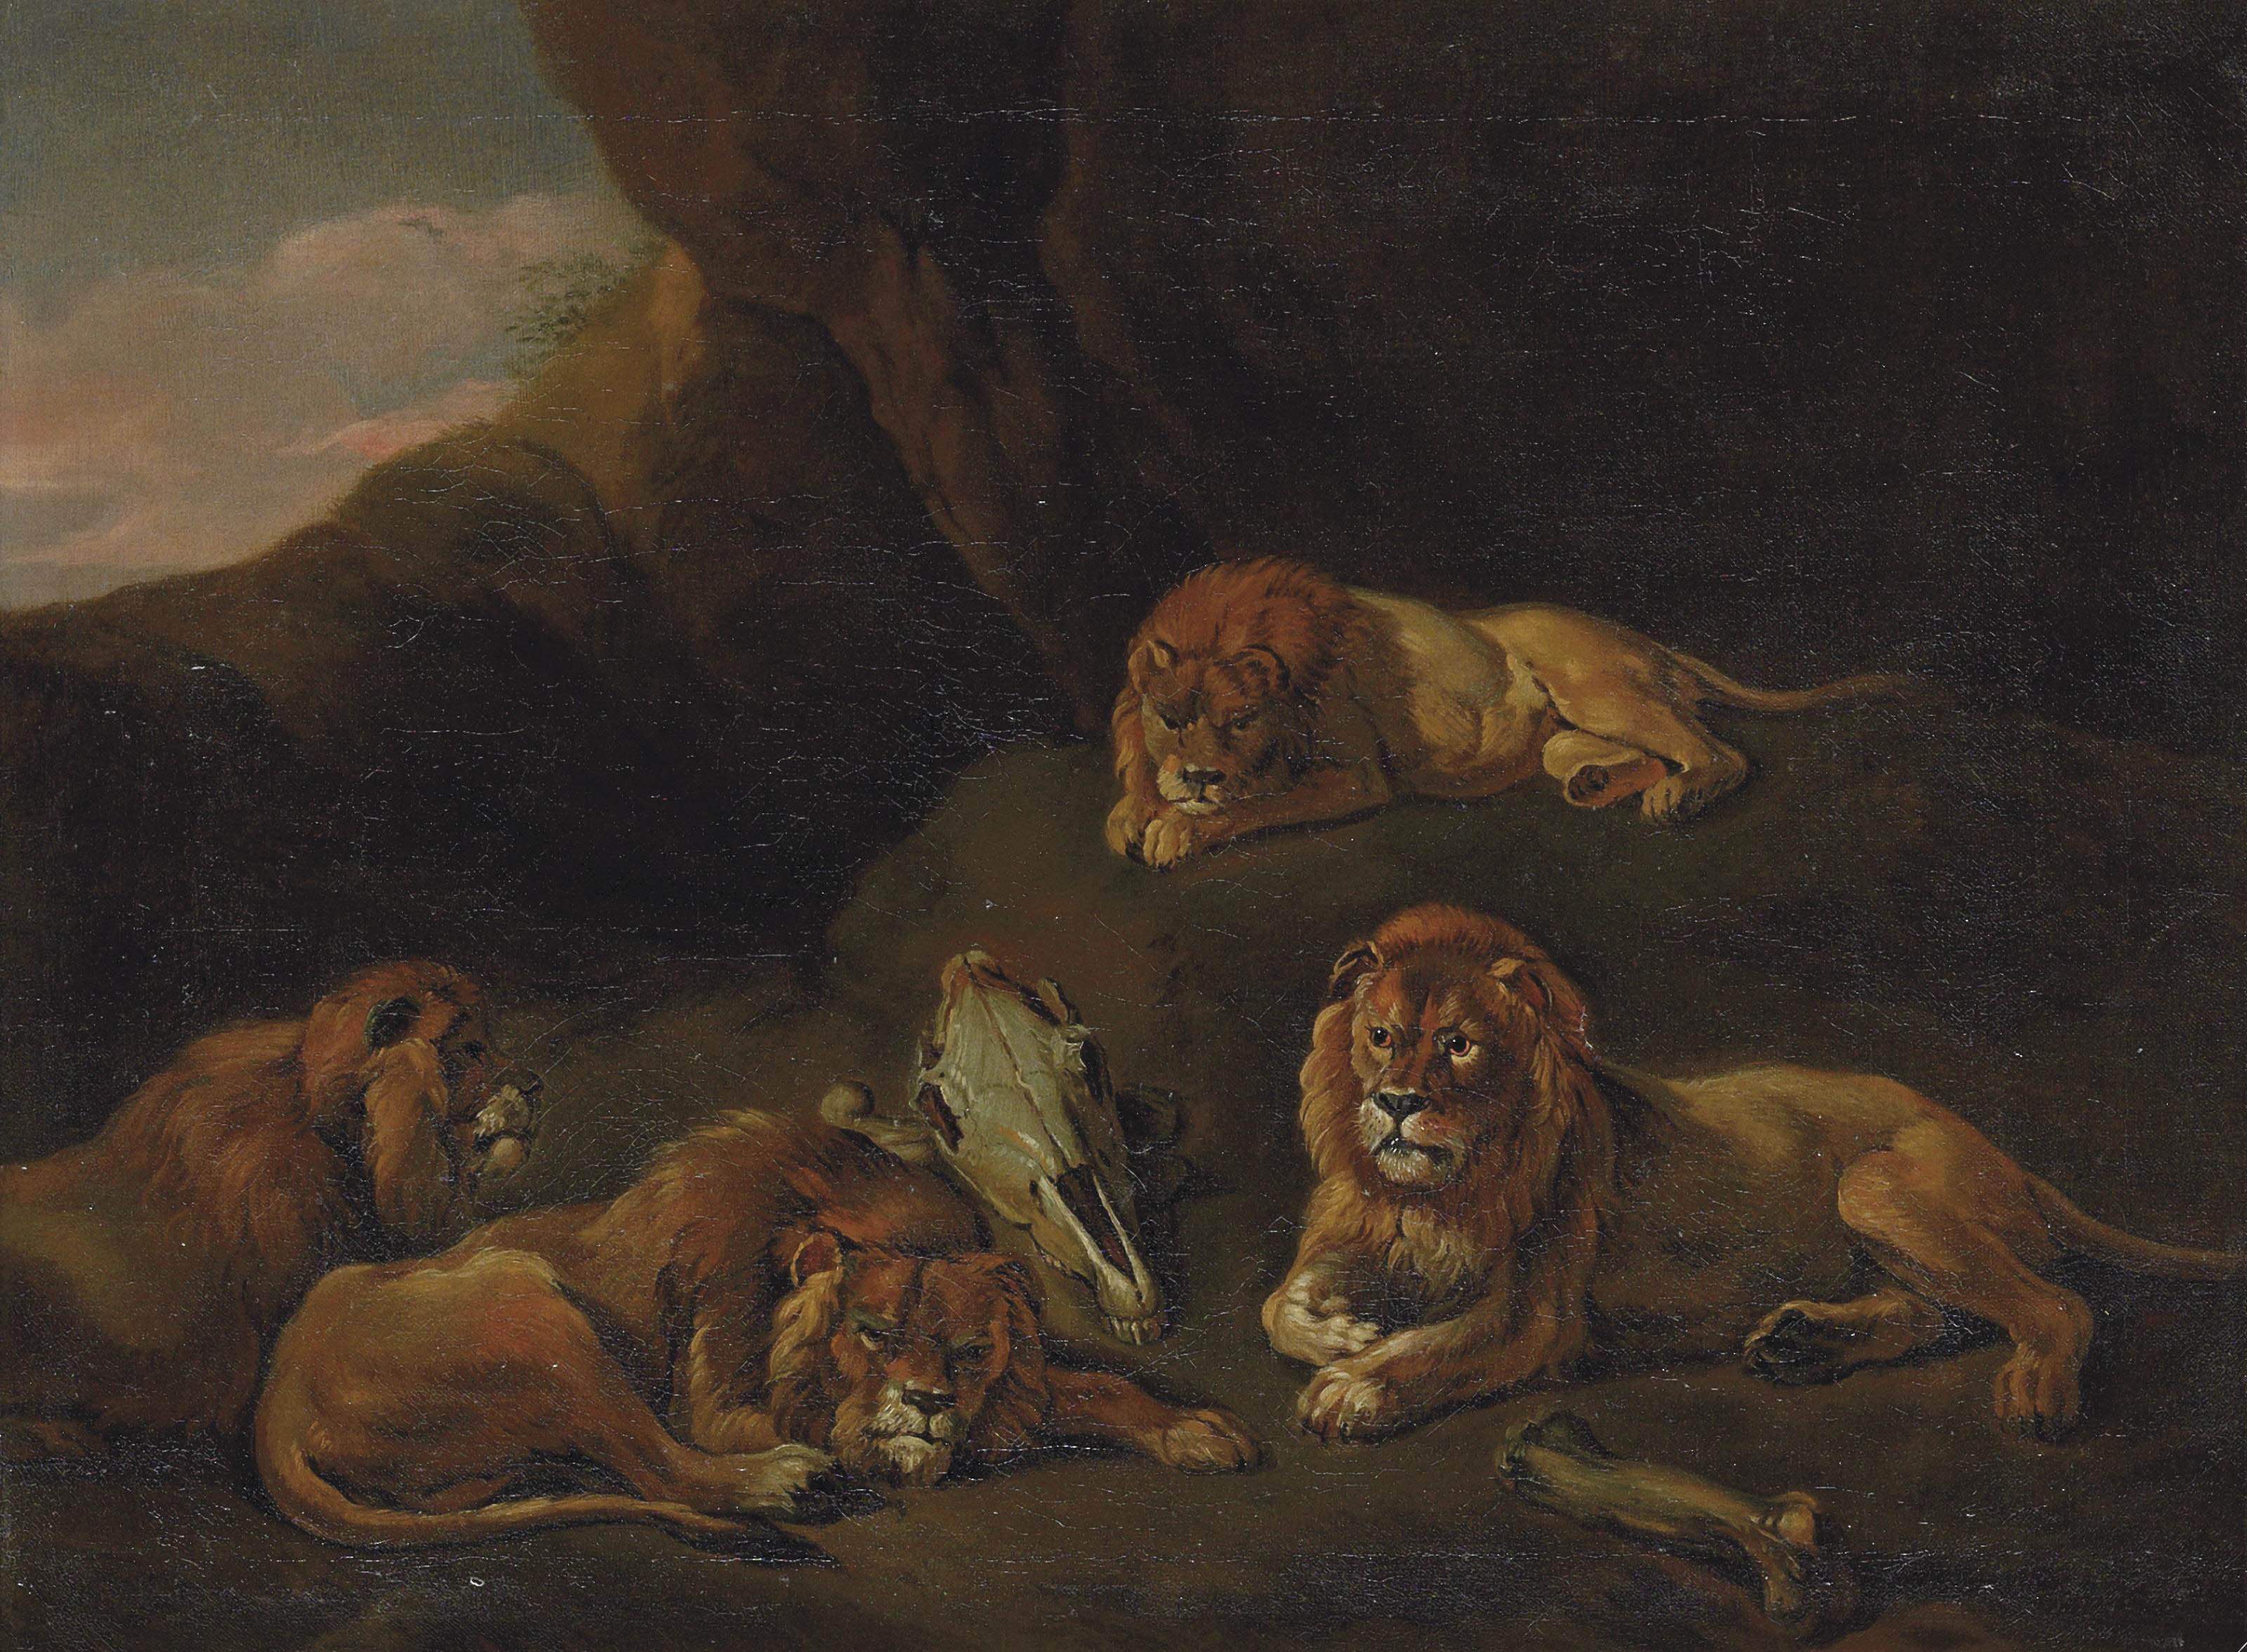 Lions resting in a rocky landscape